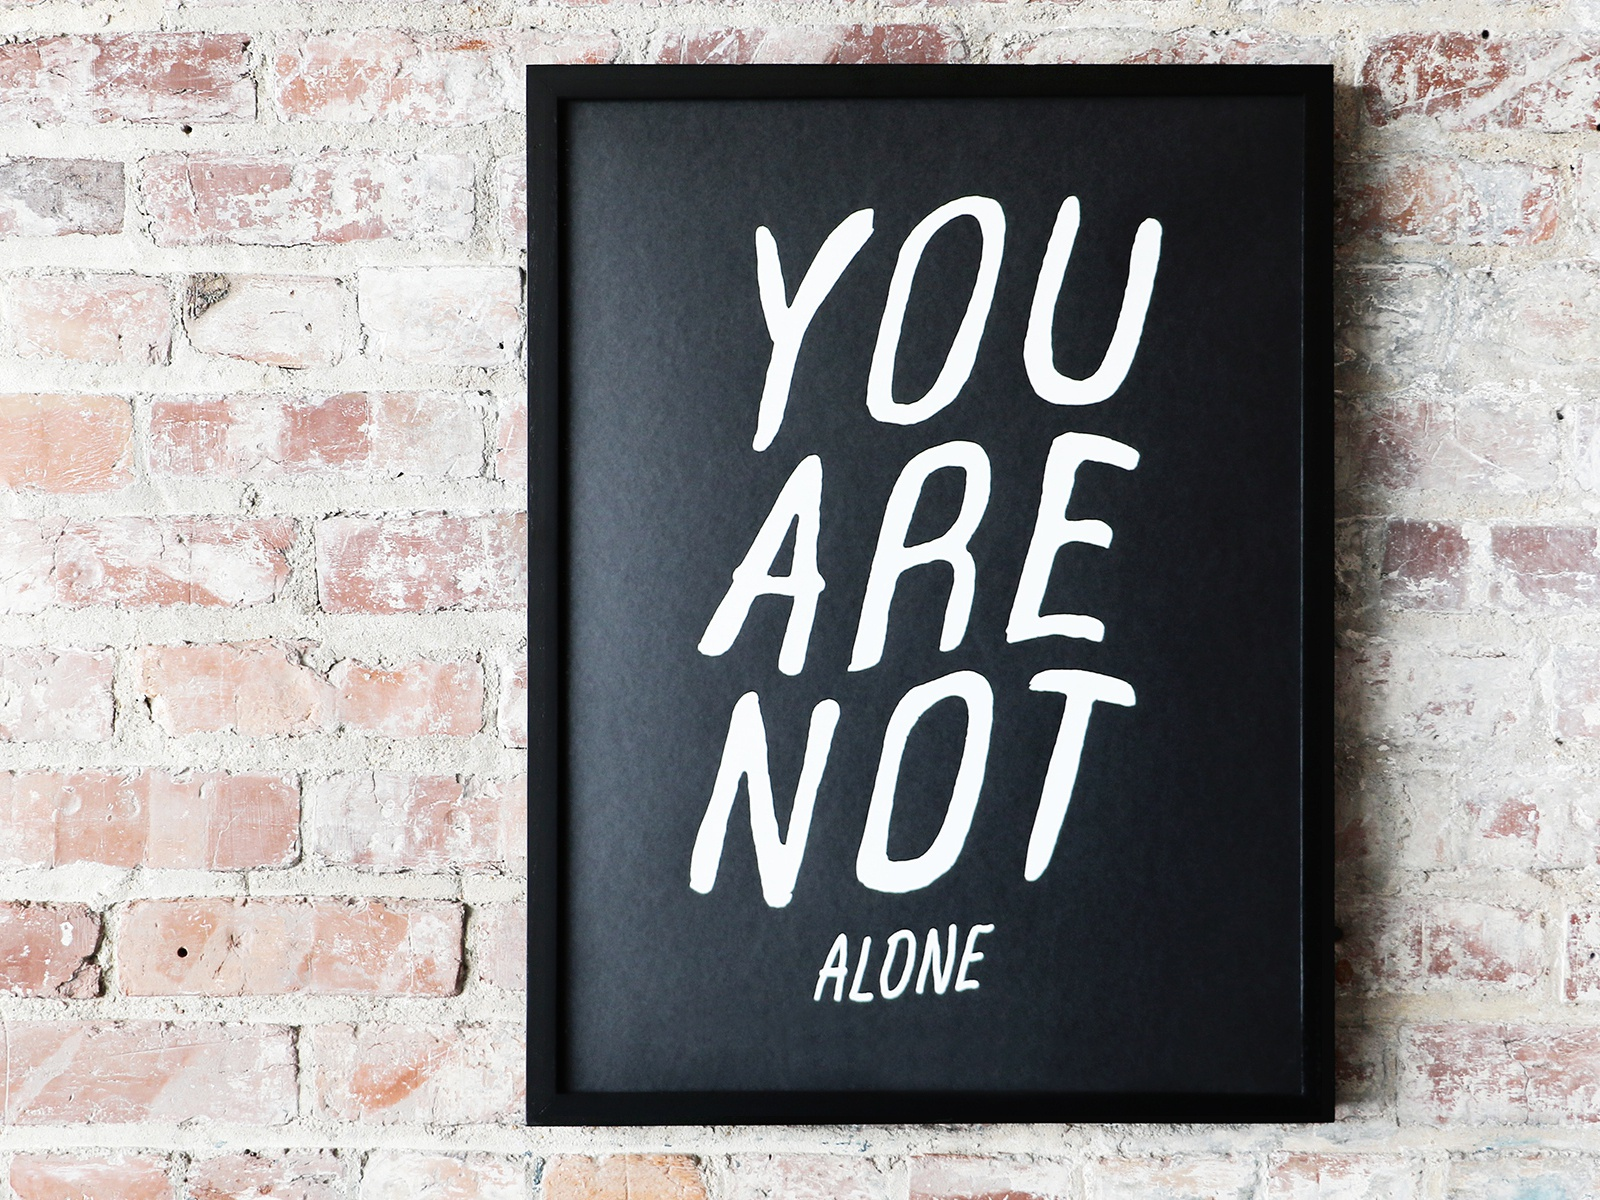 Jkdc powerposters share youarenotalone